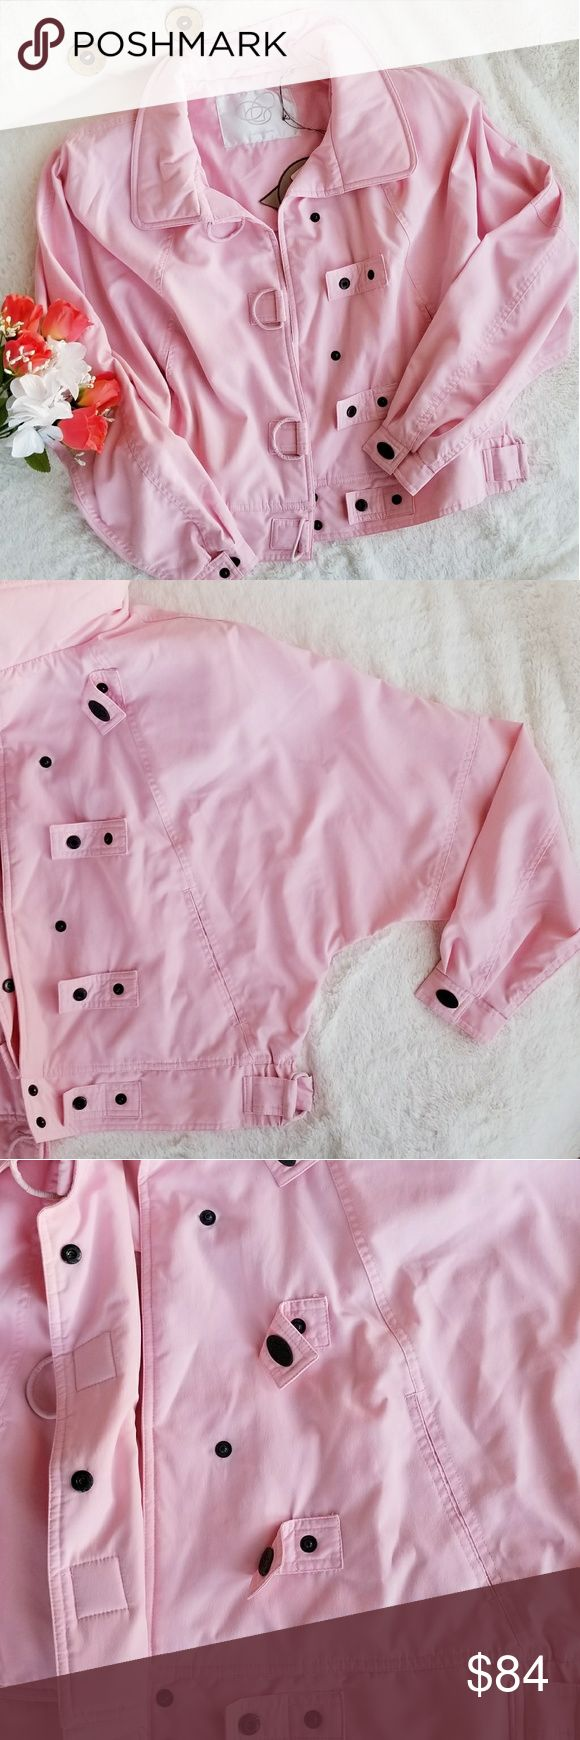 NWT Bobbie Burns Windbreaker Jacket Bobbie Burns Soft pink Windbreaker Jacket. Detachable thin shoulder padding. Micro-Flament Fabric. D ring closures. Two front pockets. Elastic panel at each side of waistband, along with a double D-ring closure.BBC embroidered on back in an abstract font.Size S/M. NWT🌸 Make an offer🛍 Bobbie Burns Jackets & Coats